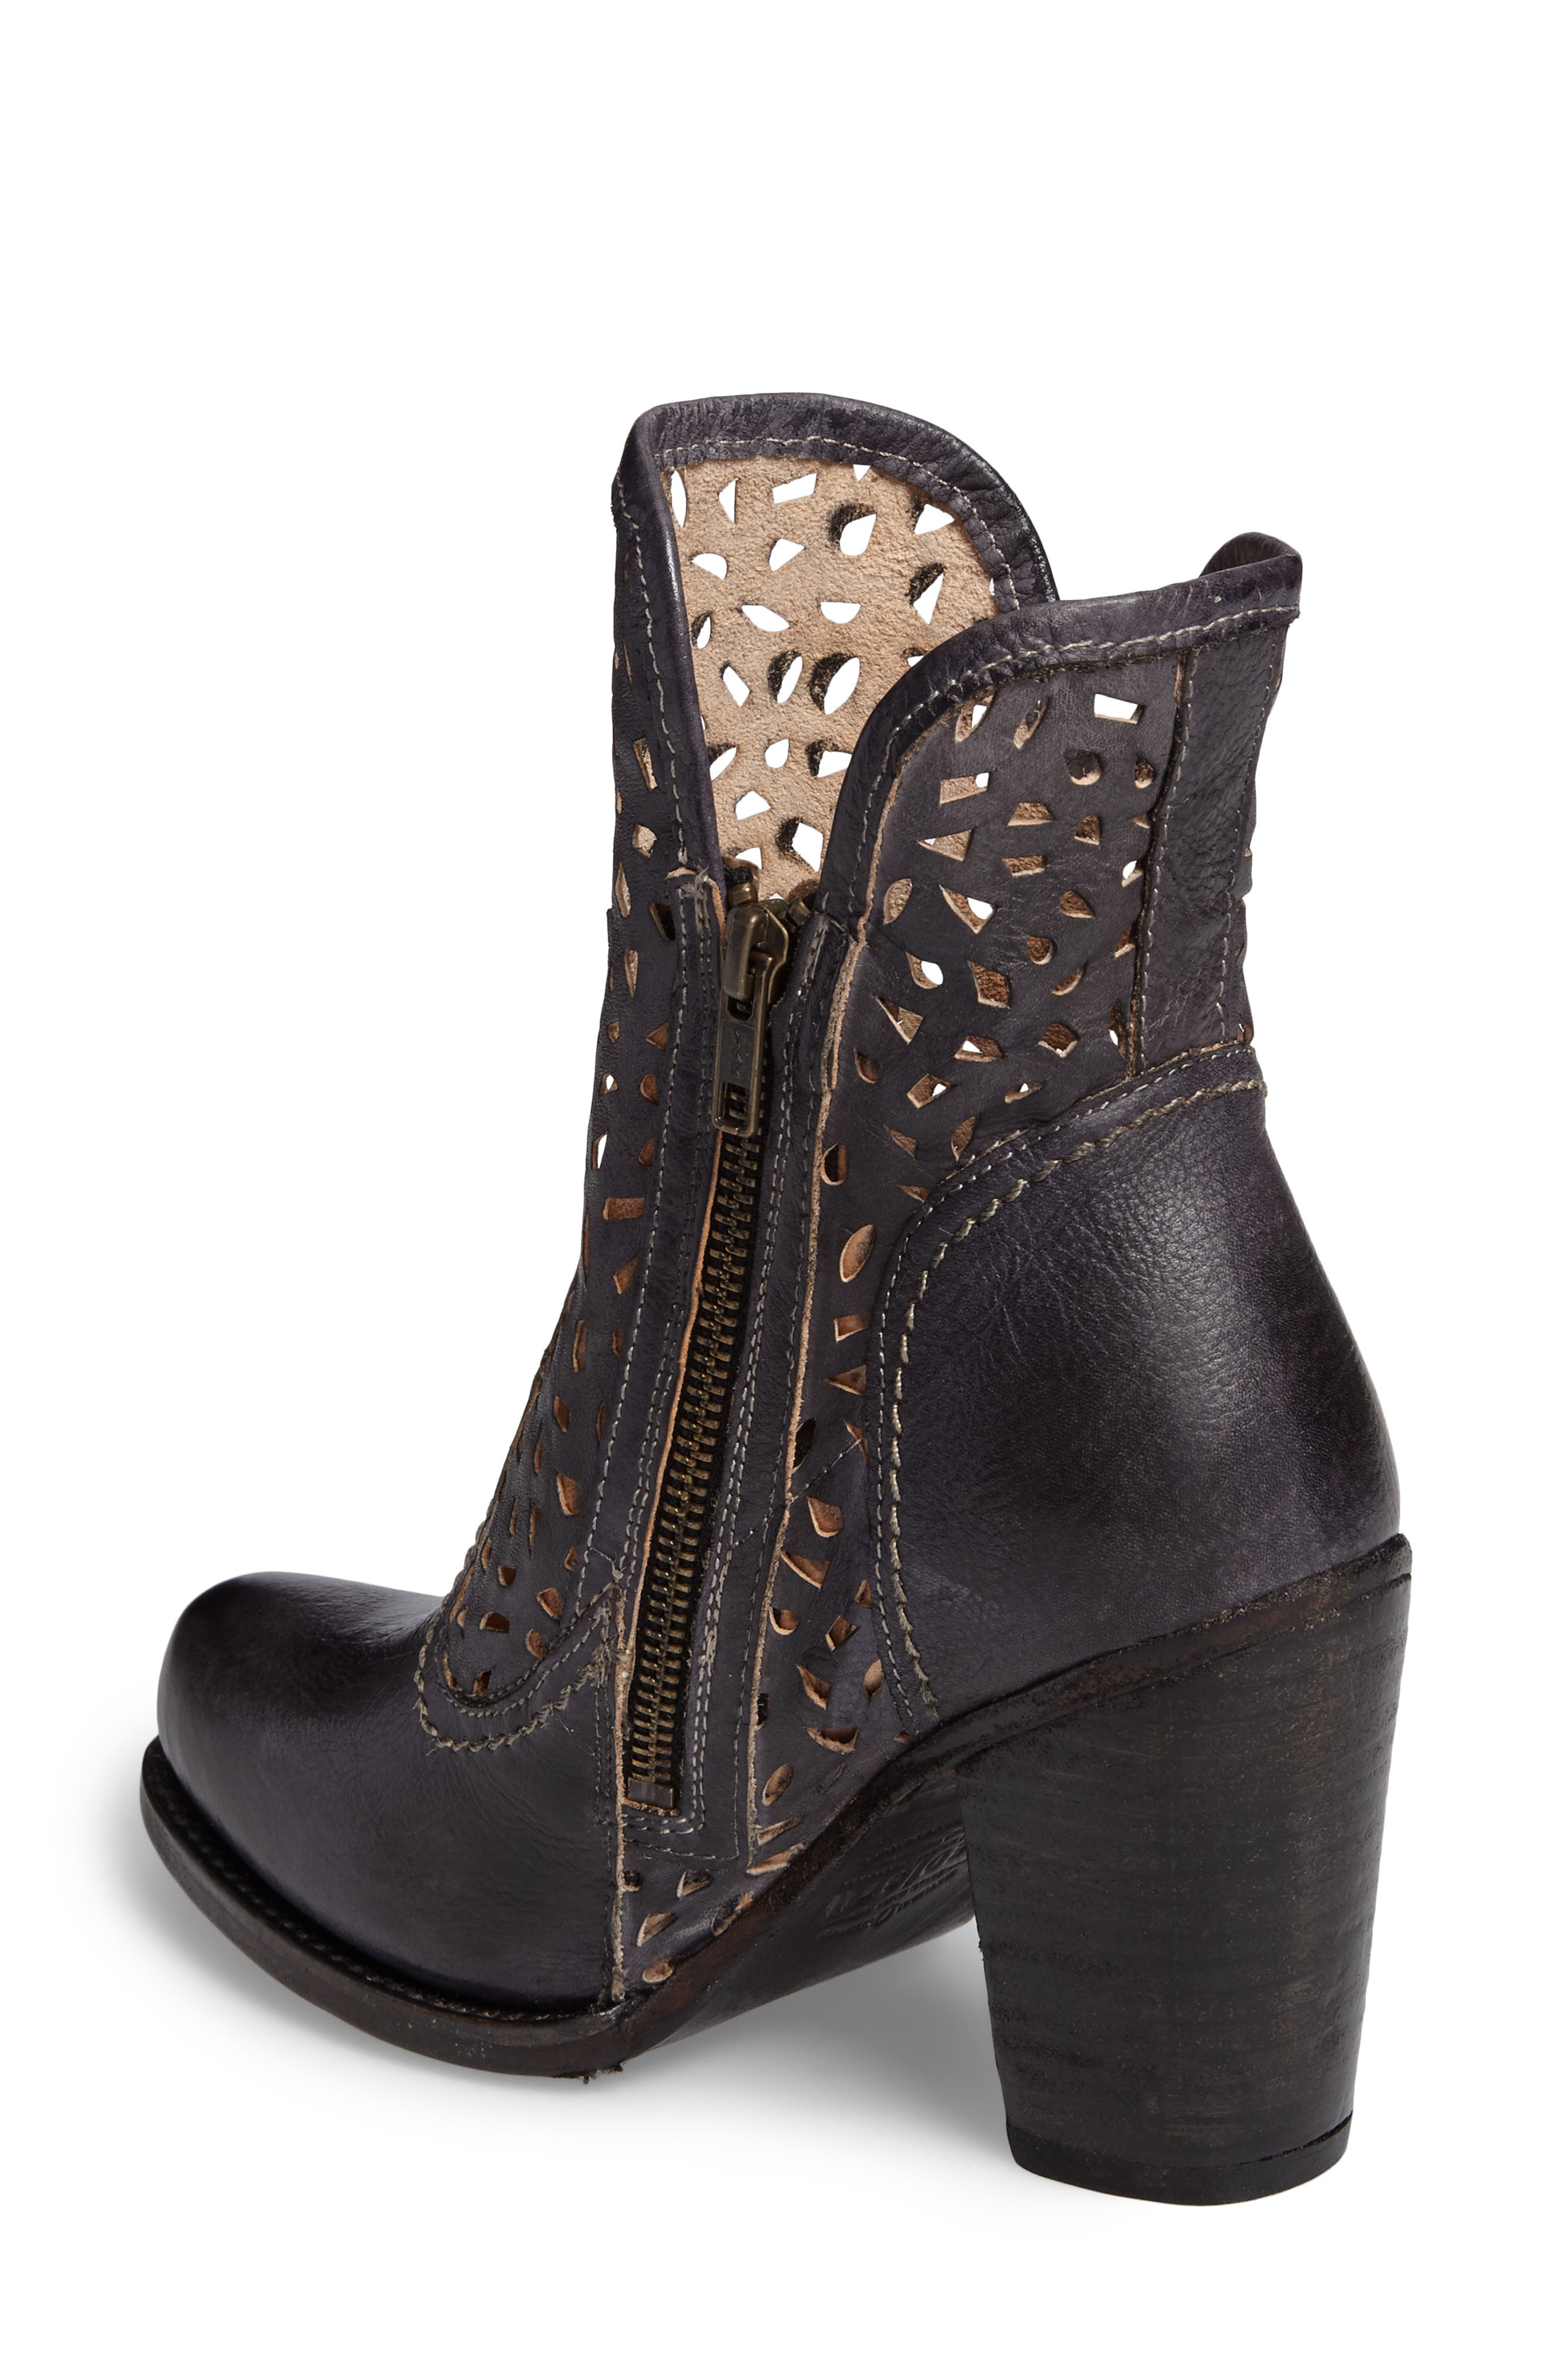 Irma Perforated Boot,                             Alternate thumbnail 2, color,                             Graphito Rustic Leather